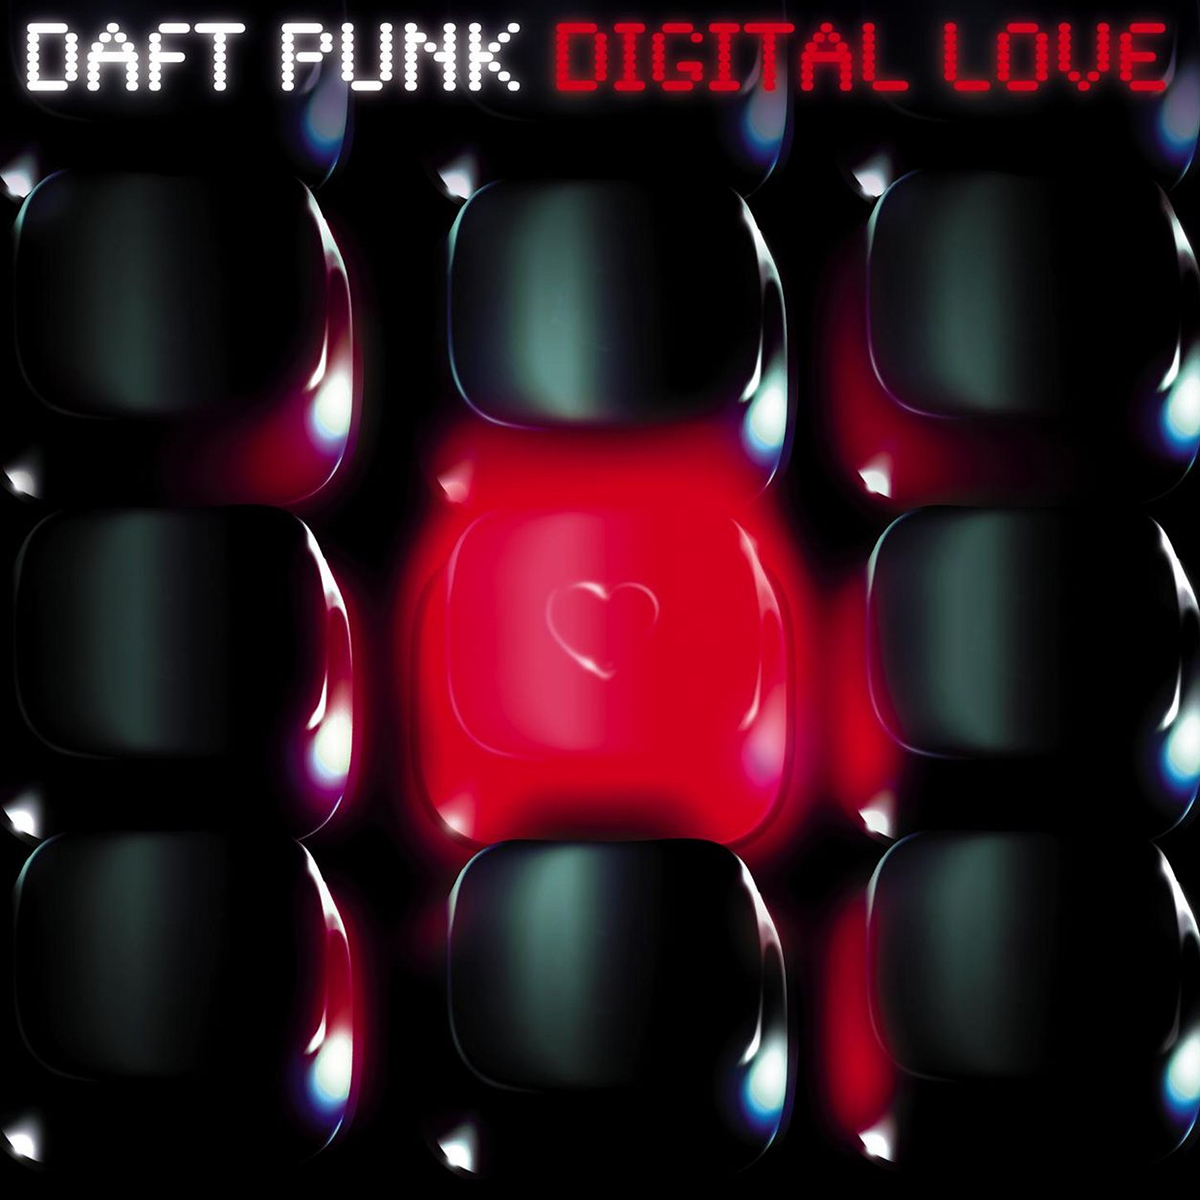 File:Digital Love.jpg